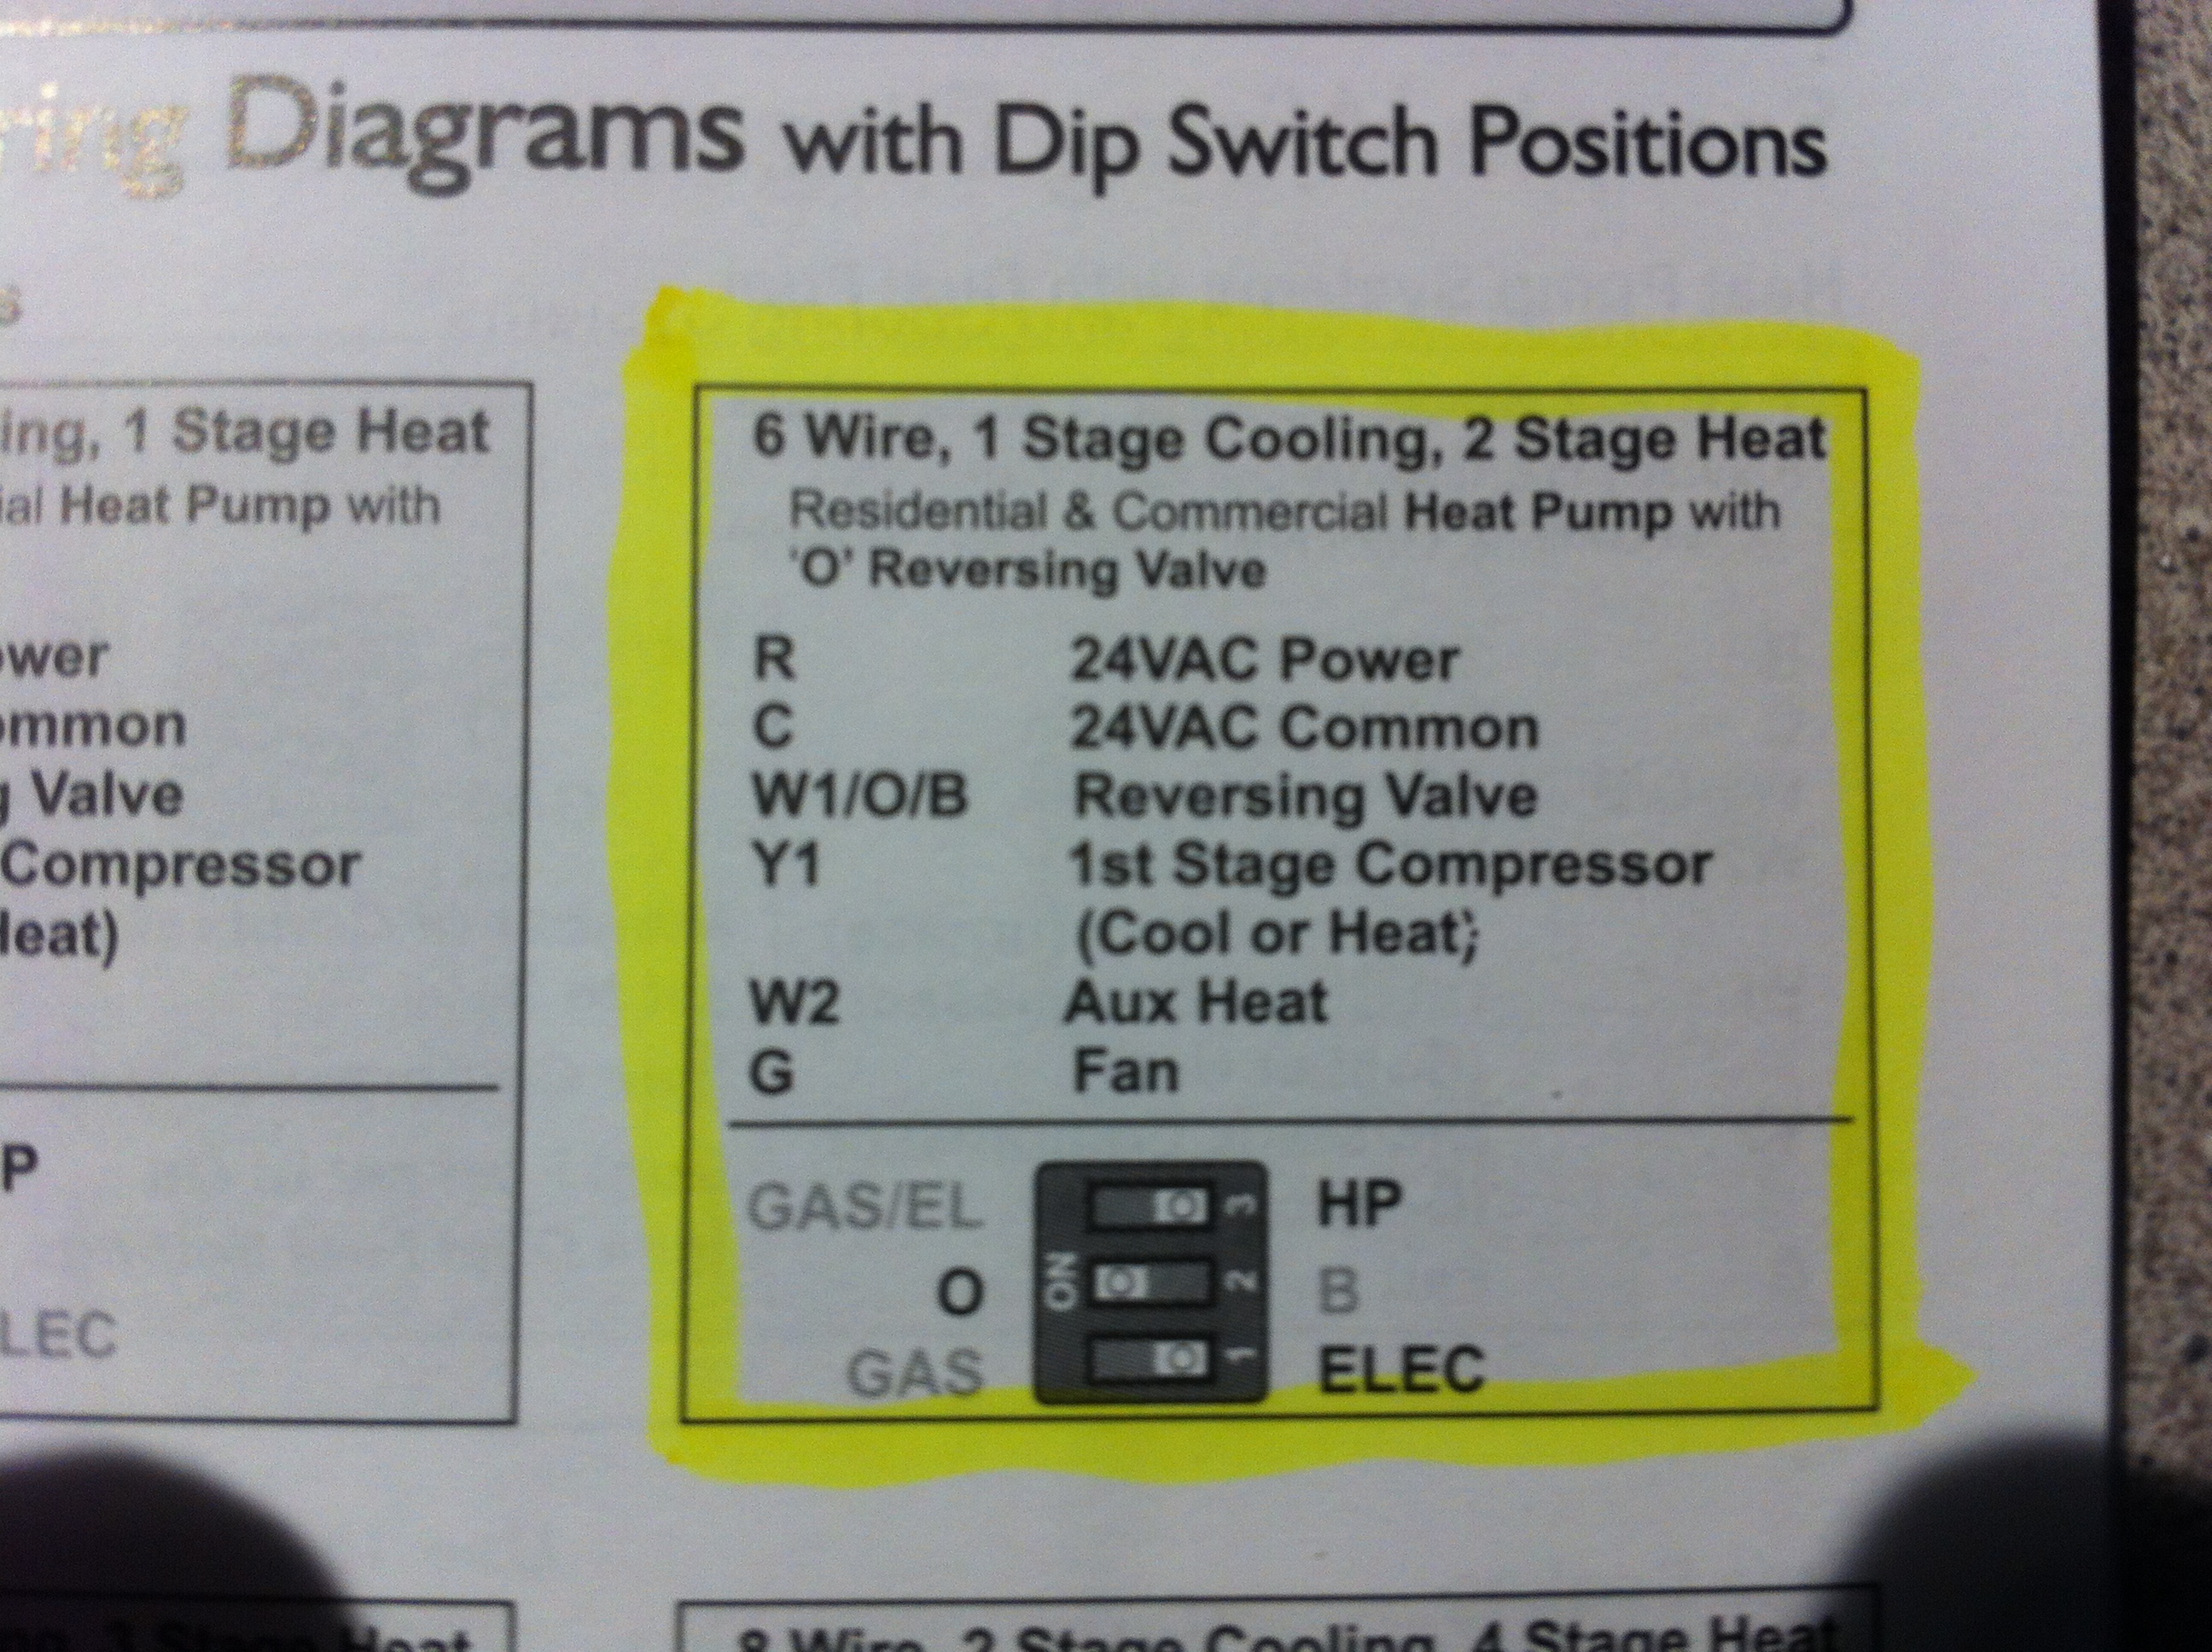 I Have A Robert Shaw 3210 Thermostat With R C B W2 E W1